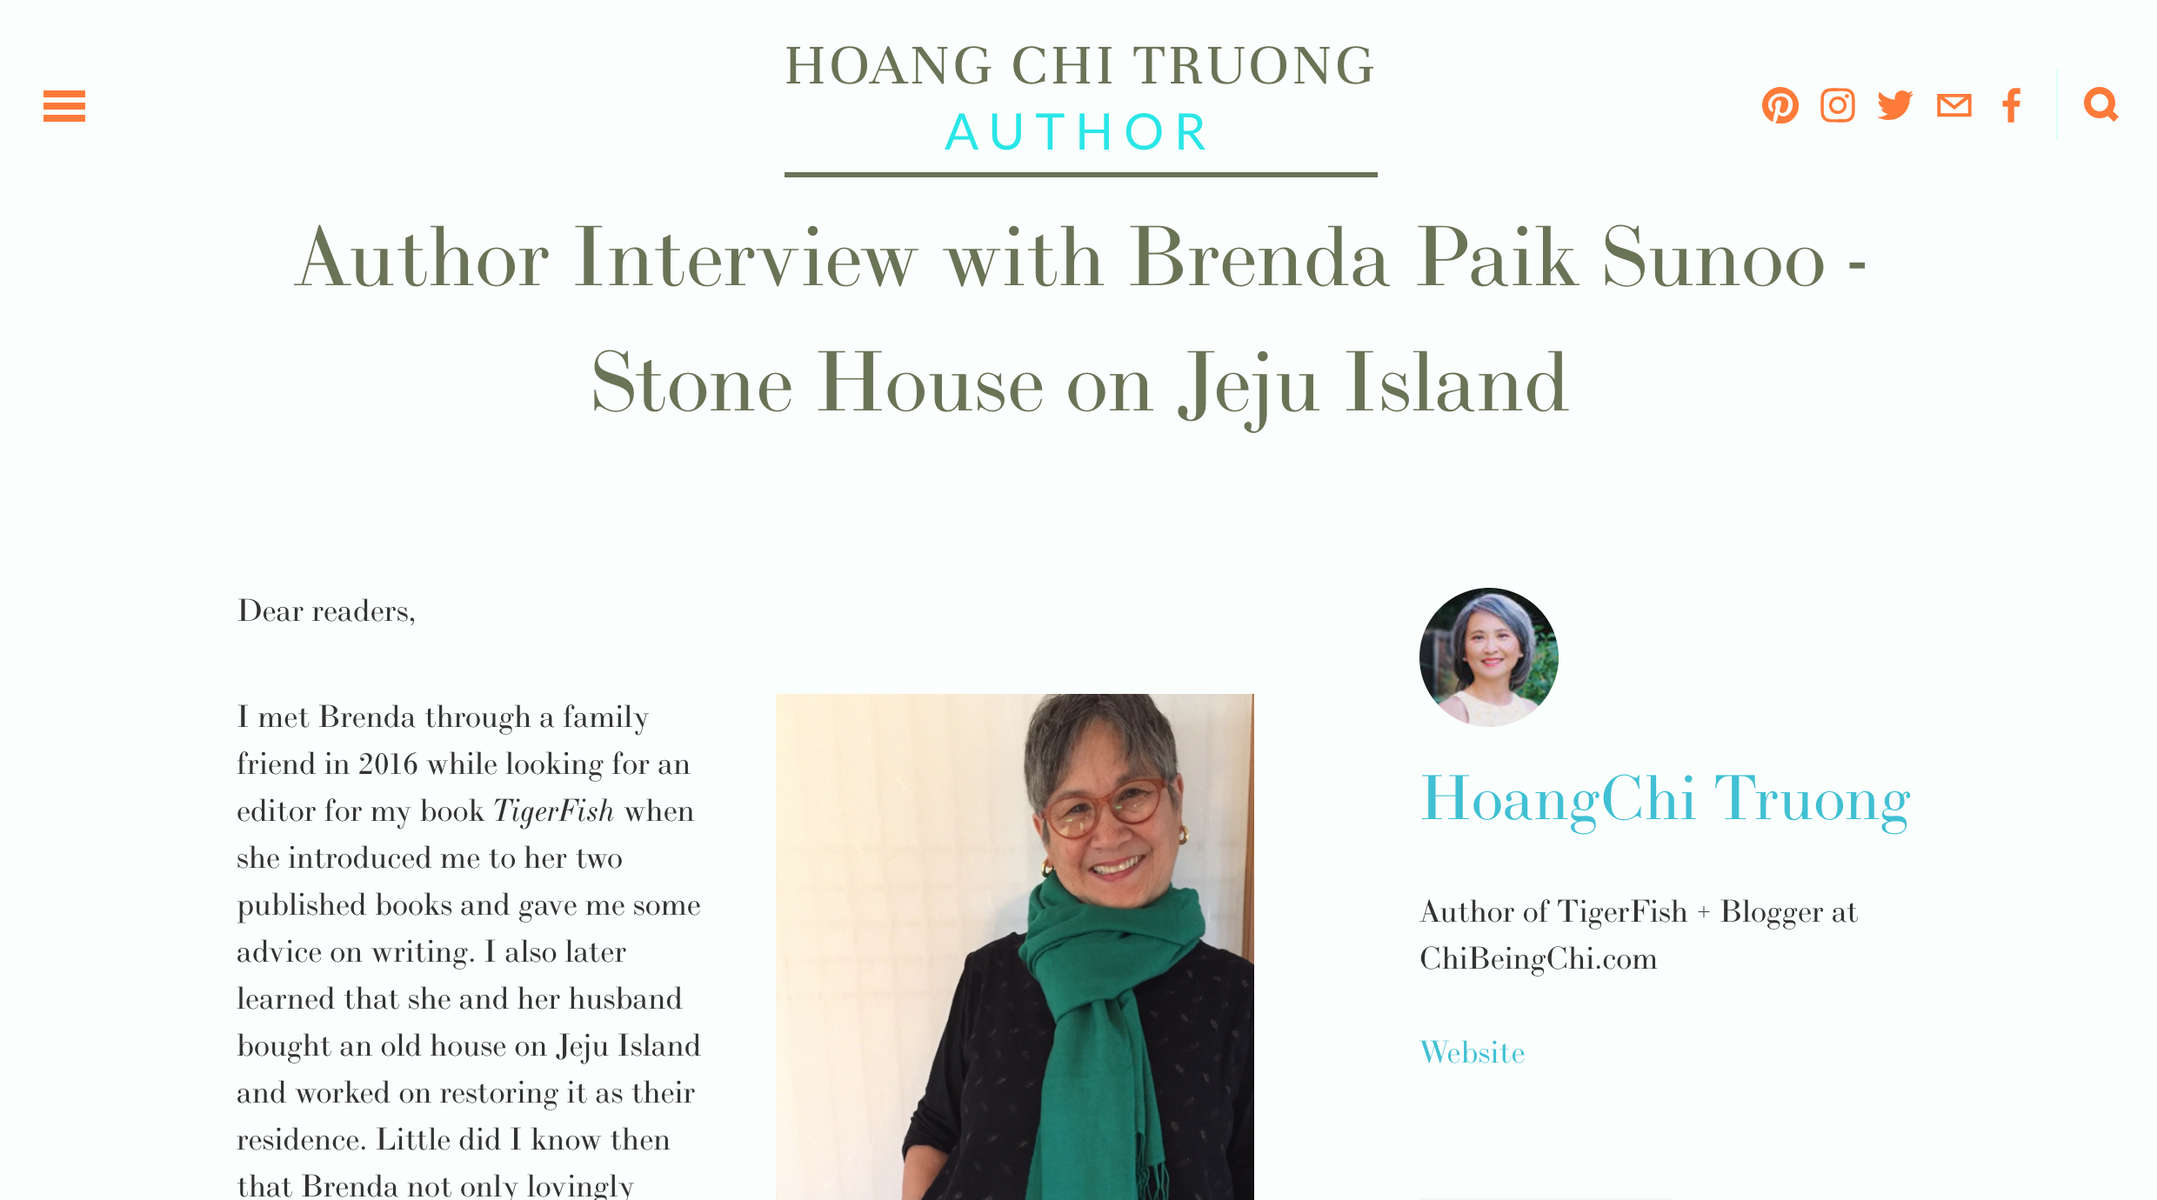 HoangChi Truong, author of TigerFish + Blogger at ChiBeingChi.com, interviews Brenda:https://www.chibeingchi.com/authors-community/2018/11/30/author-interview-with-brenda-paik-sunoo?fbclid=IwAR3WW7p7G7LIxg_-WNQlAY2zuwUI7qK7nooa8RZrhTwY0DMyM5W61kjh0LY